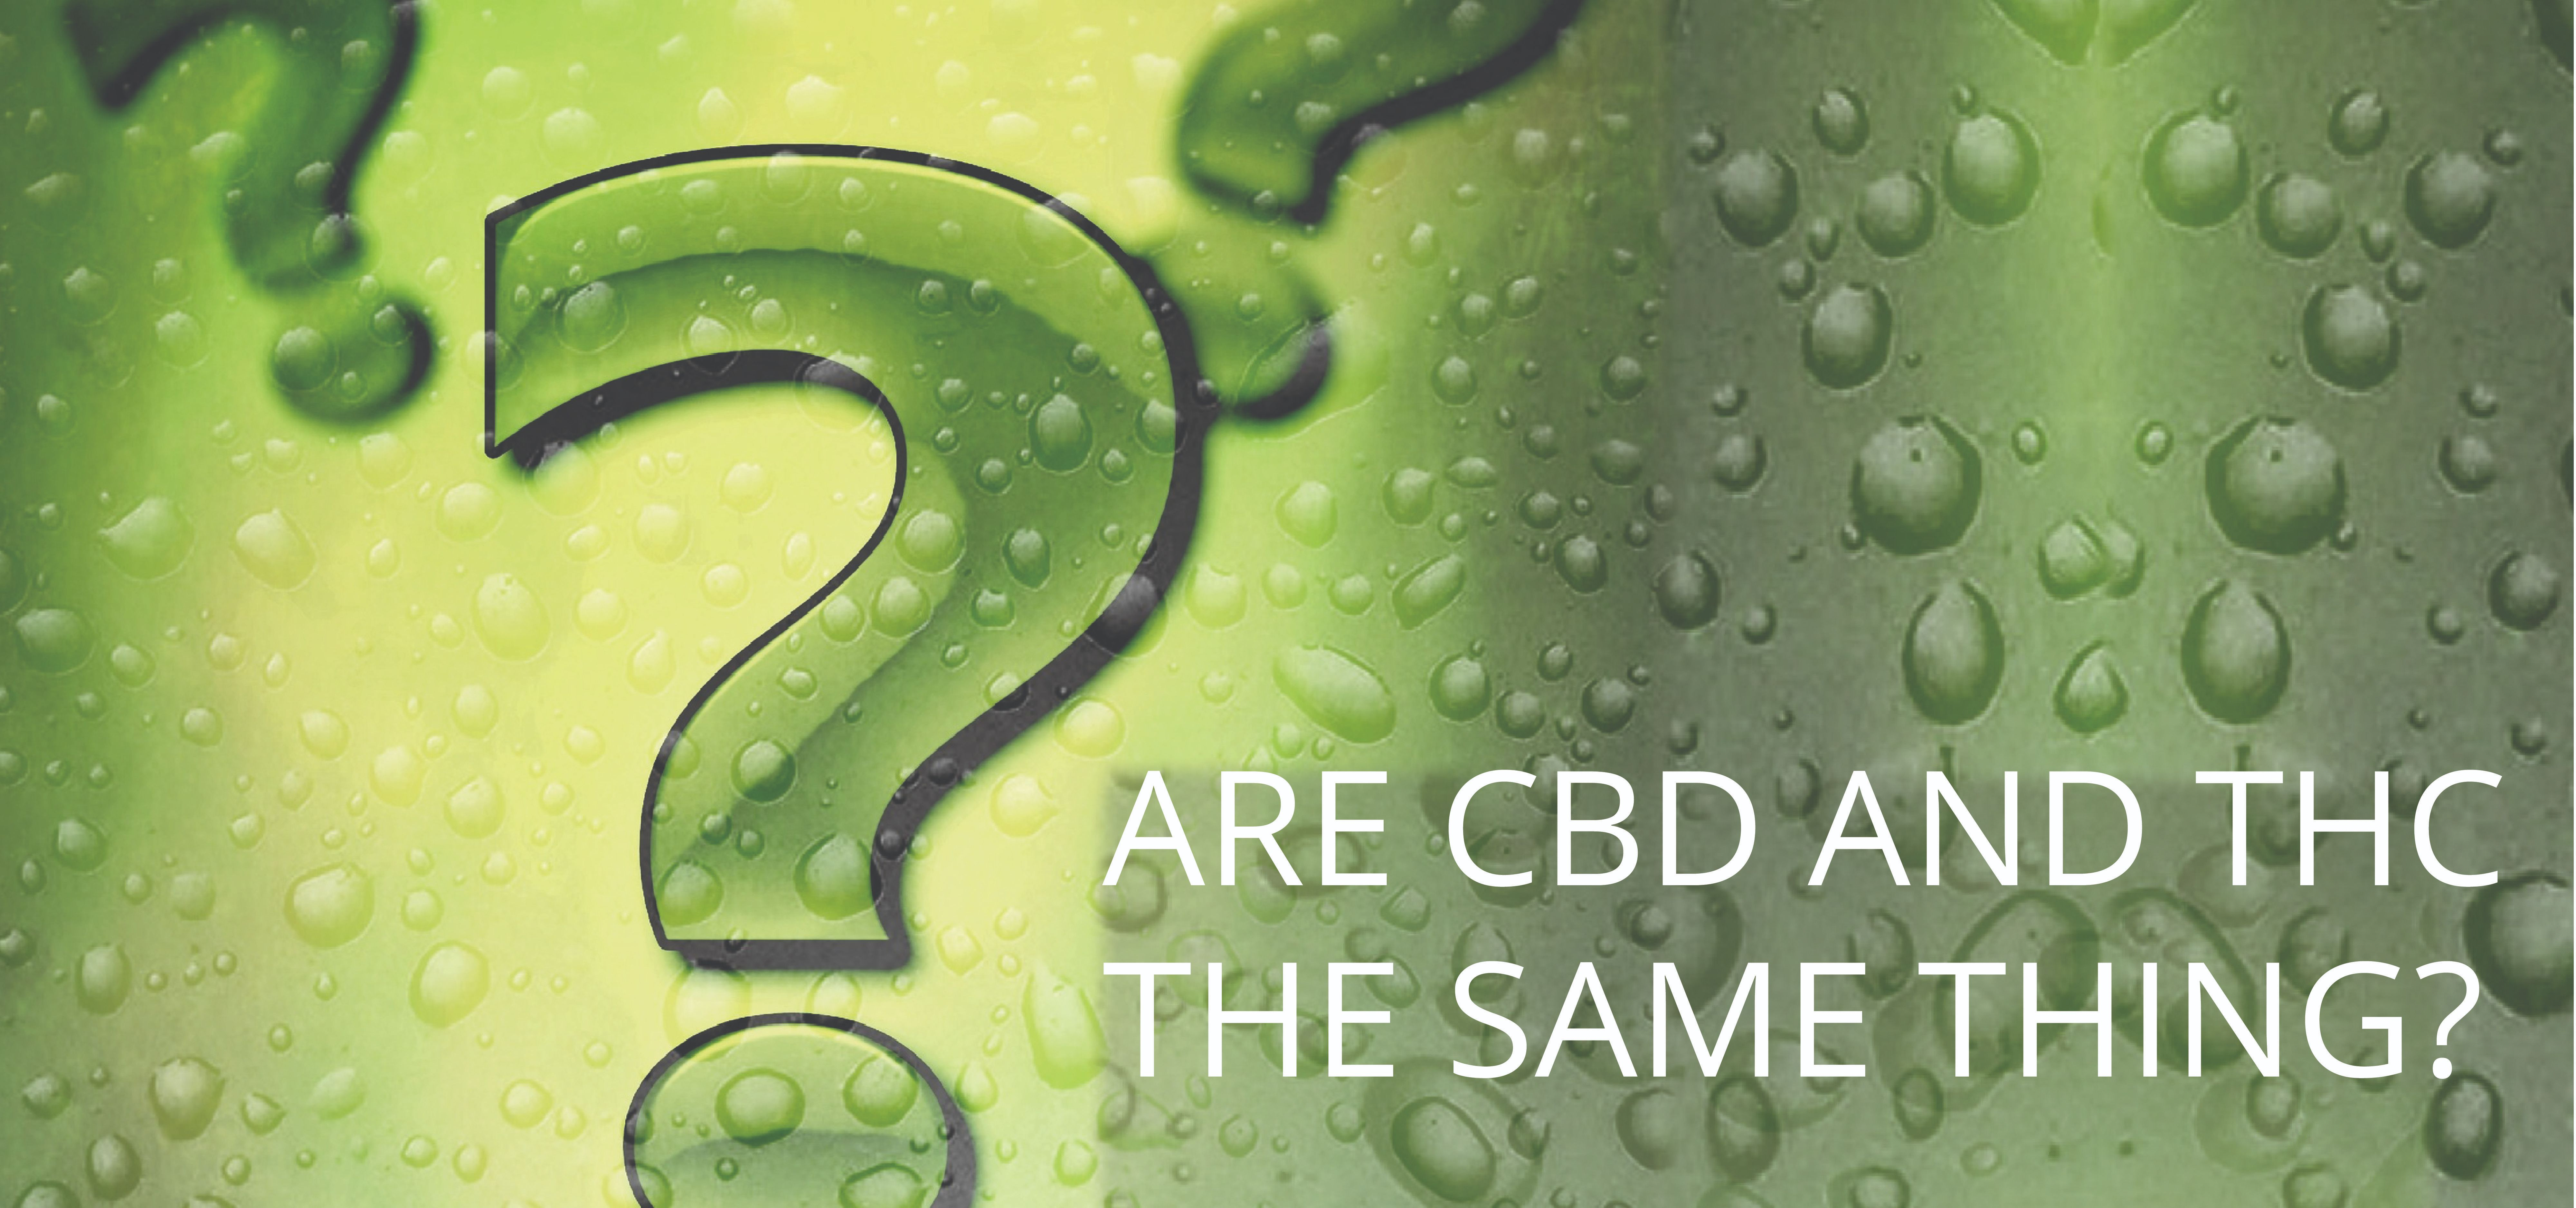 Green plant background with question mark and cbd oil drops_customer question_Are CBD and THC the same thing?_Natural Organic Pure clean CBD oils